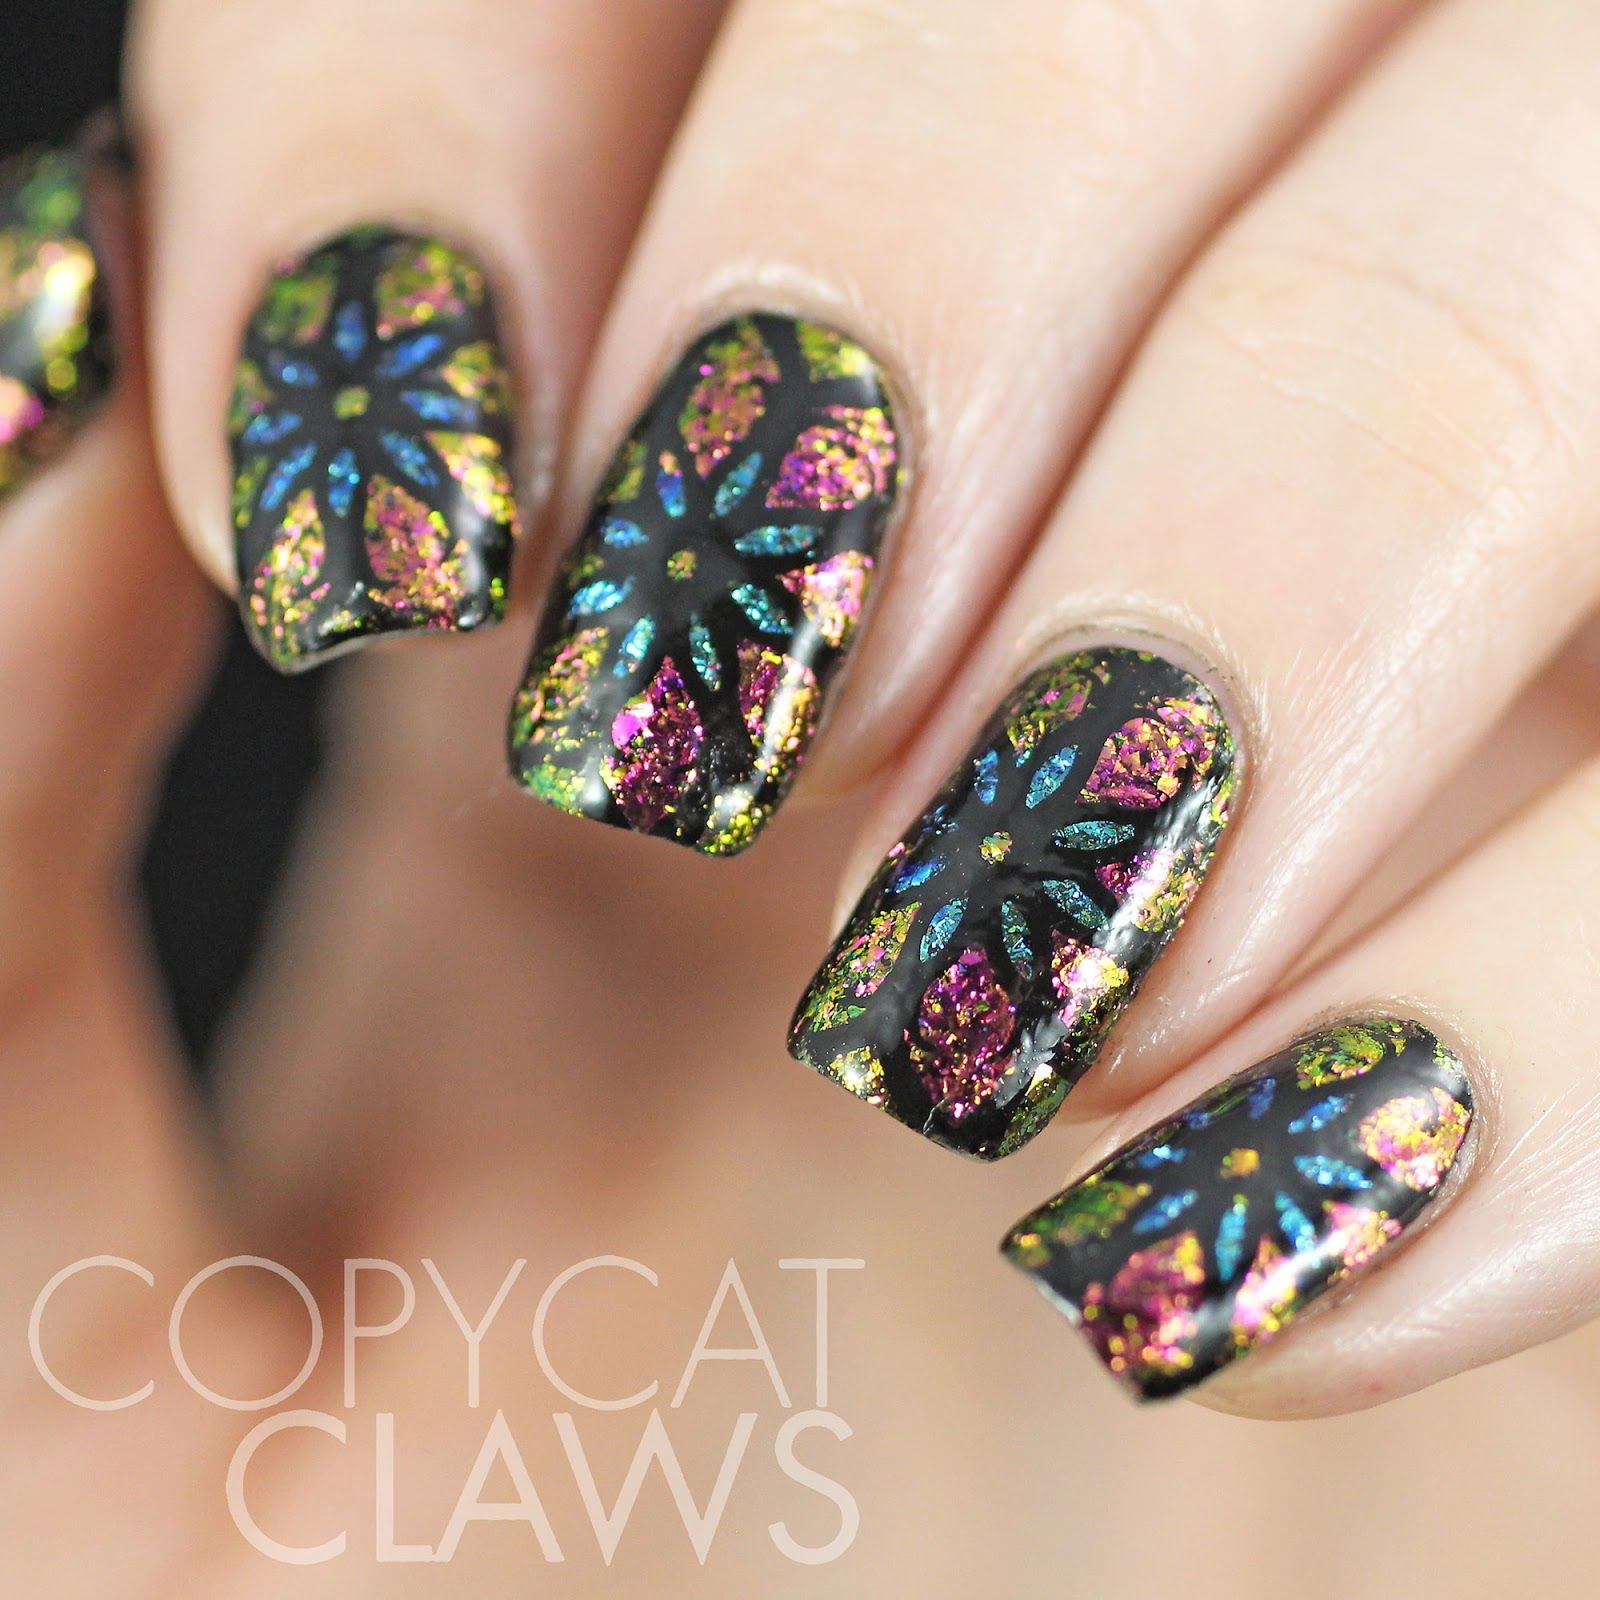 Copycat Claws: Stained Glass Flowers with ILNP Flakies